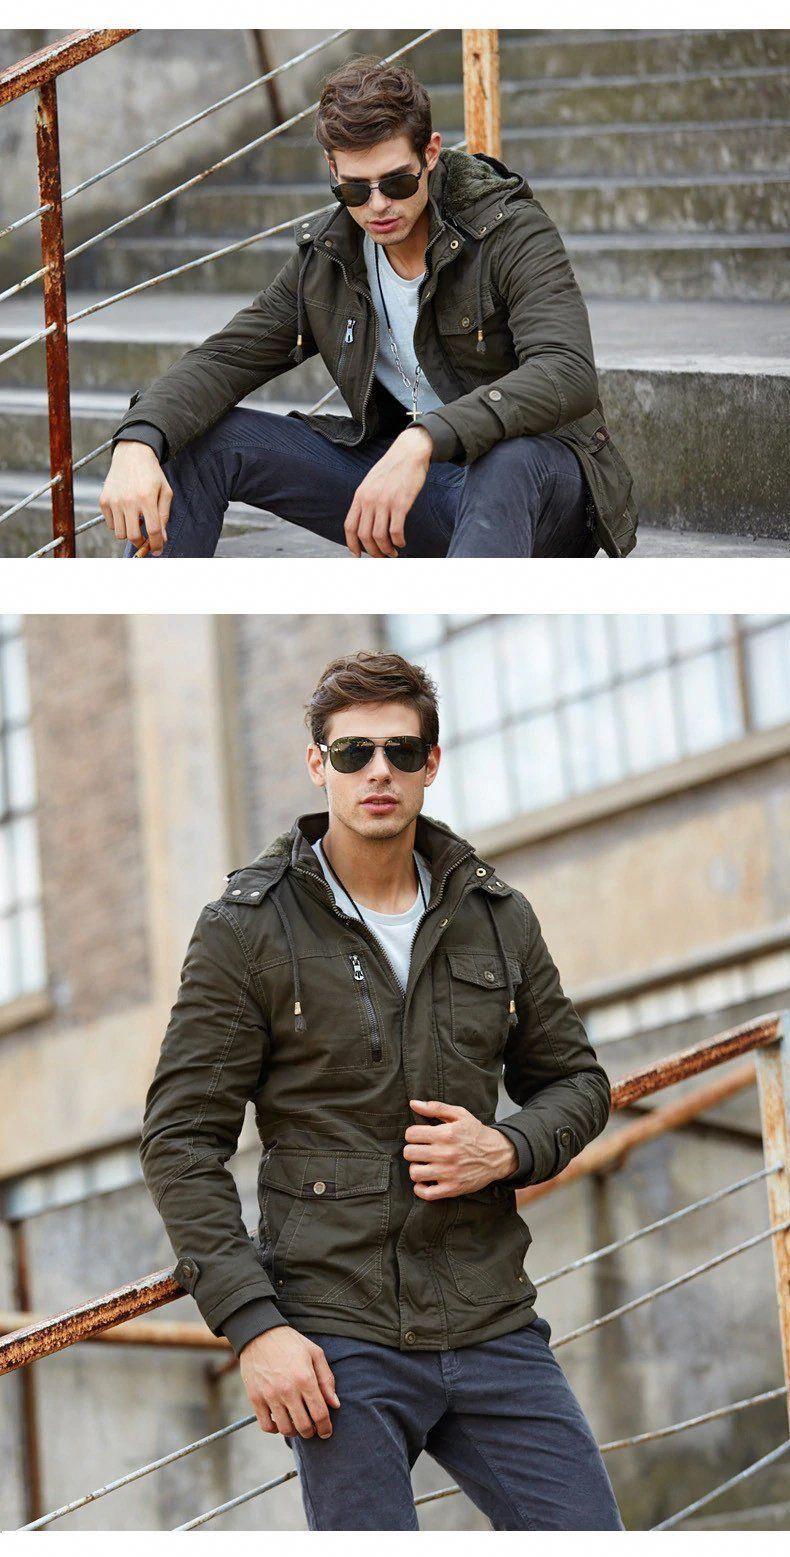 Men S Military Style Winter Jacket Hooded Army Style Thick Wool Liner Cotton Military Jacket Tactica Mens Winter Fashion Mens Fashion Smart Mens Fashion Casual [ 1557 x 790 Pixel ]